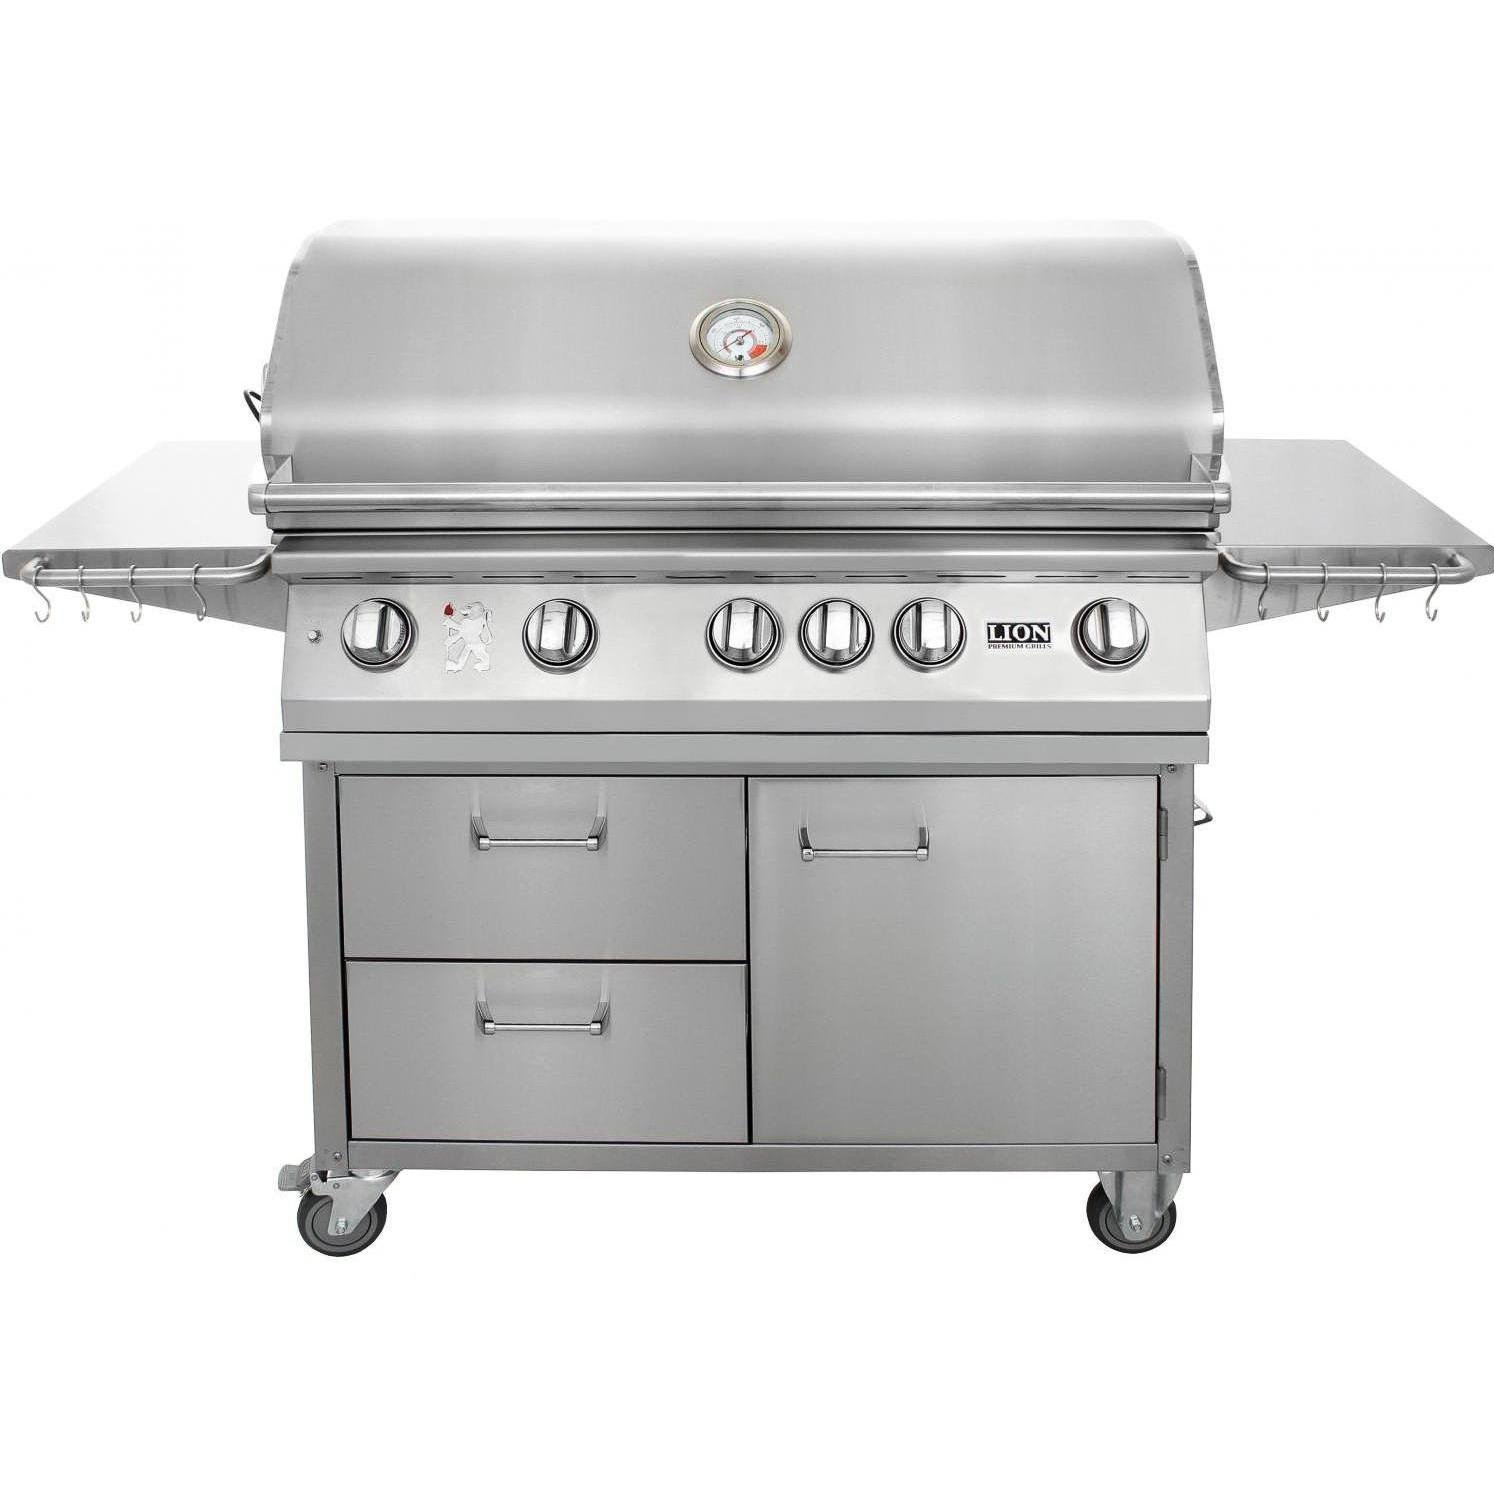 "1. Lion 40"" Stainless Steel Propane Gas Grill on Cart"